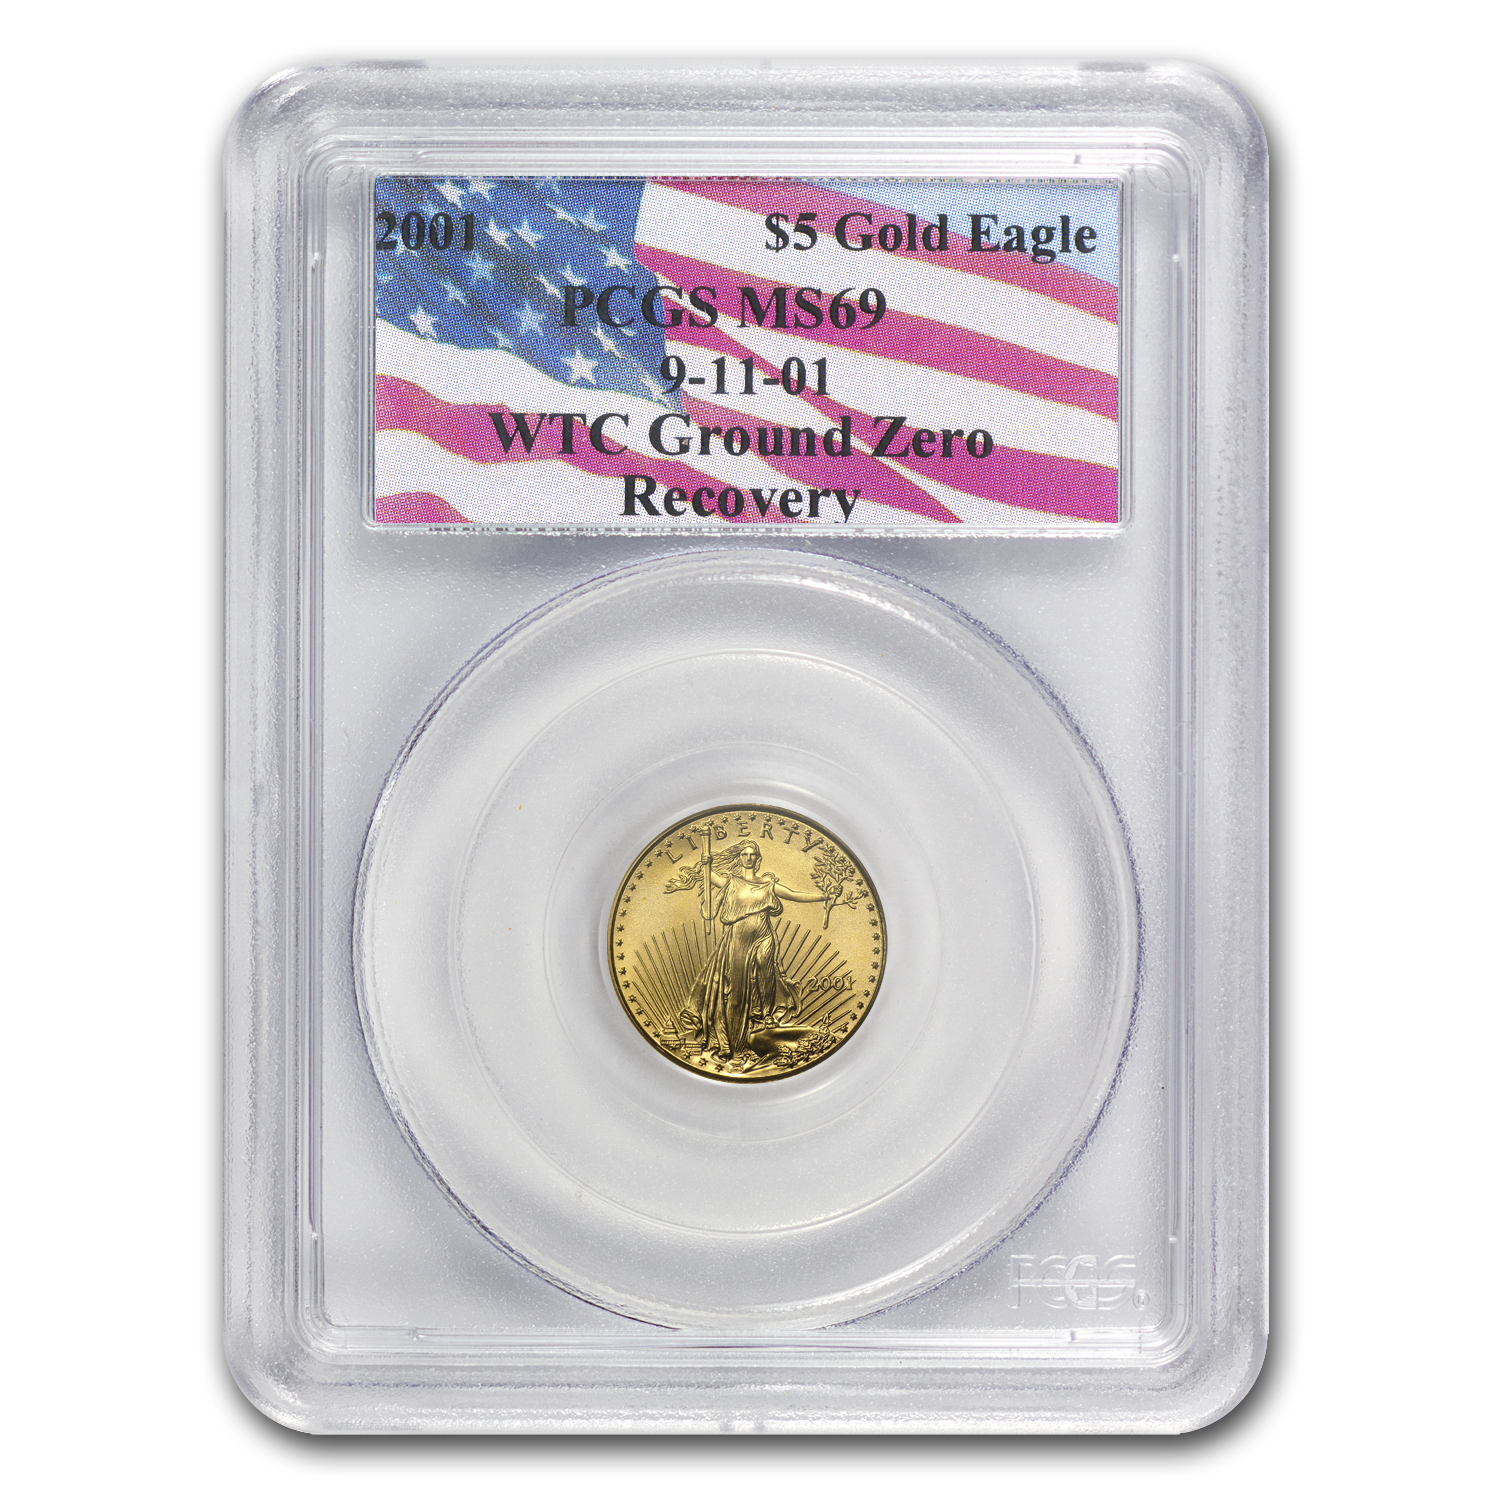 2001 1/10 oz Gold American Eagle MS-69 PCGS (World Trade Center)